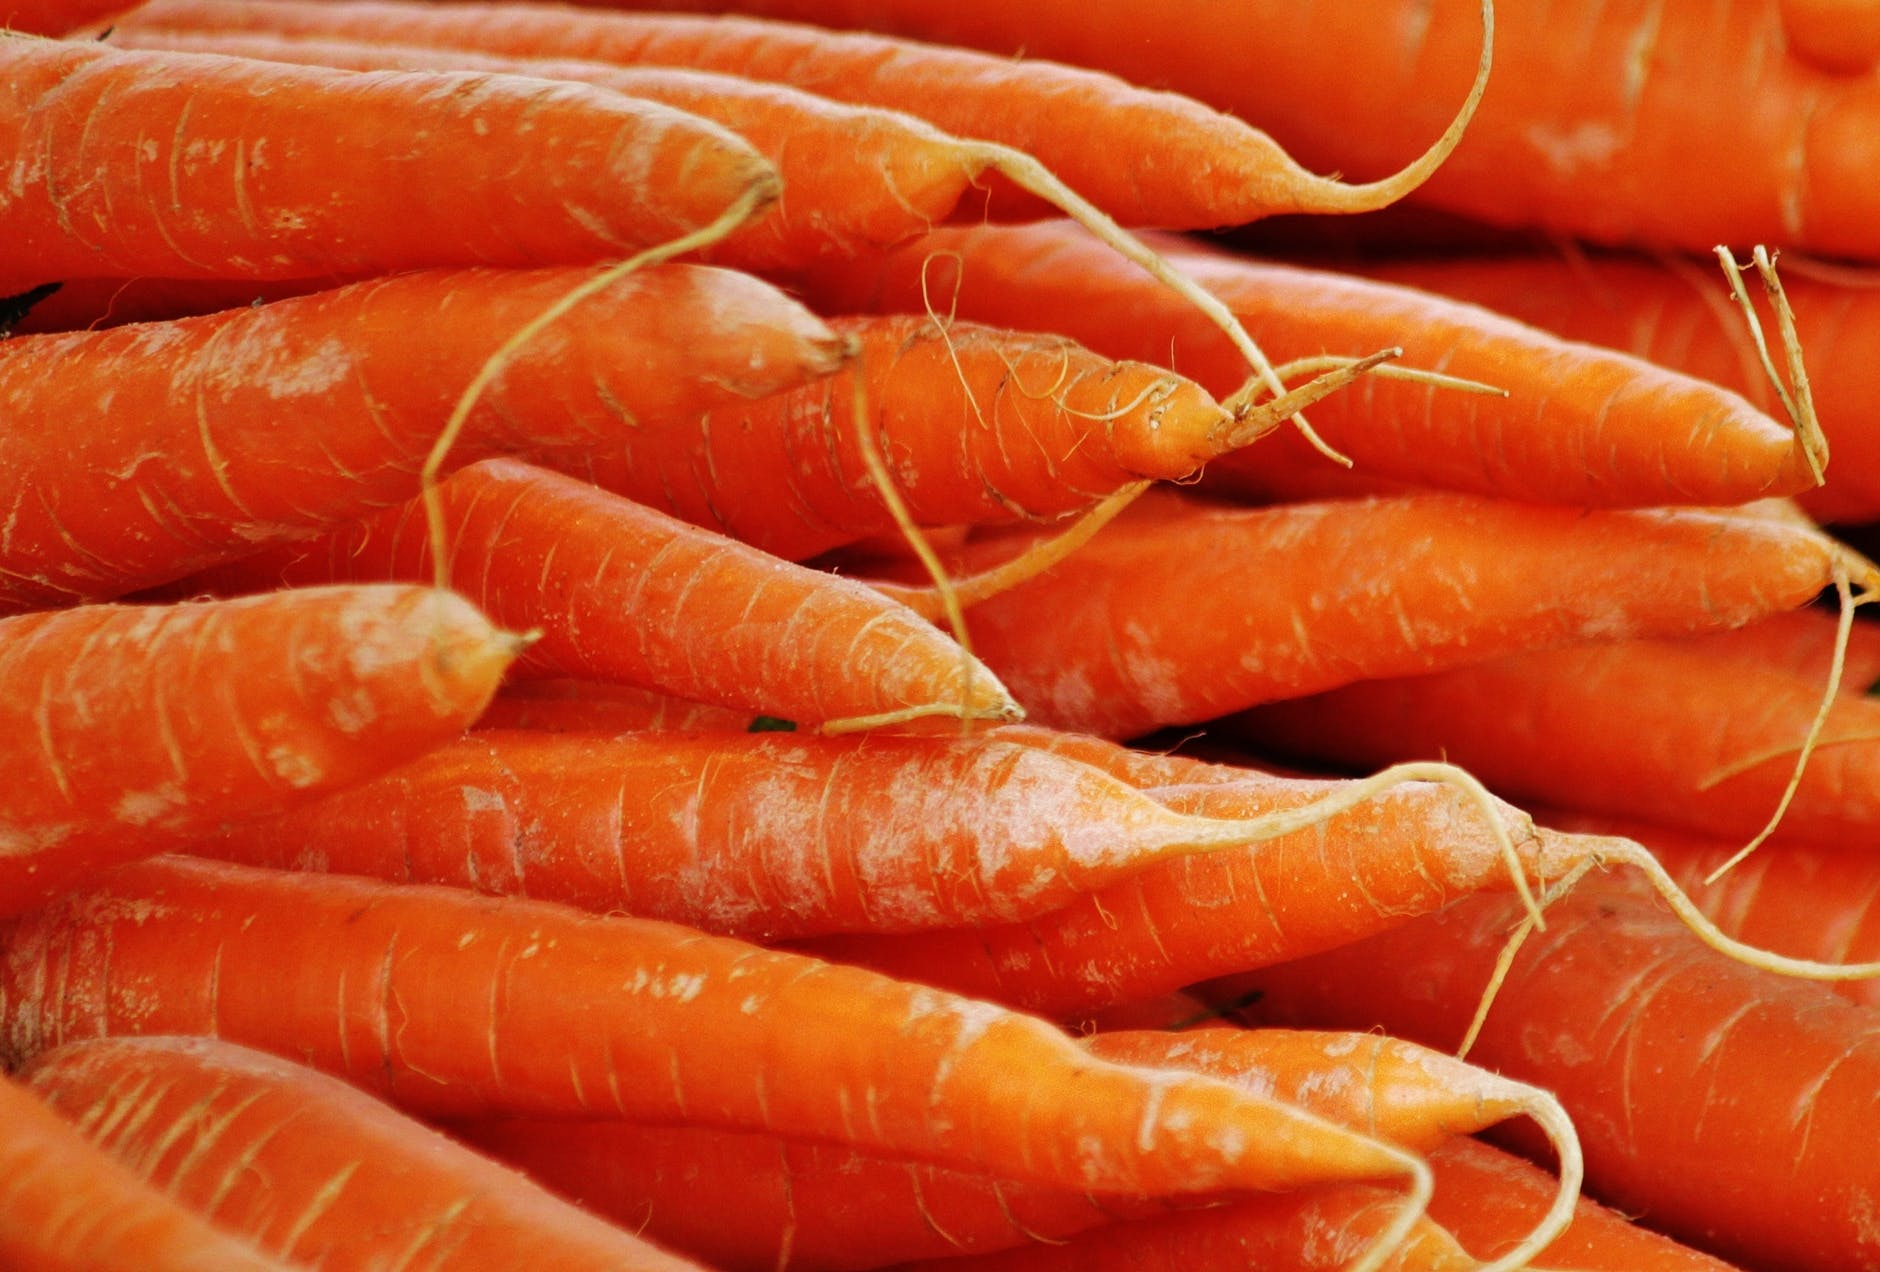 carrots-vegetables-food-orange-54082